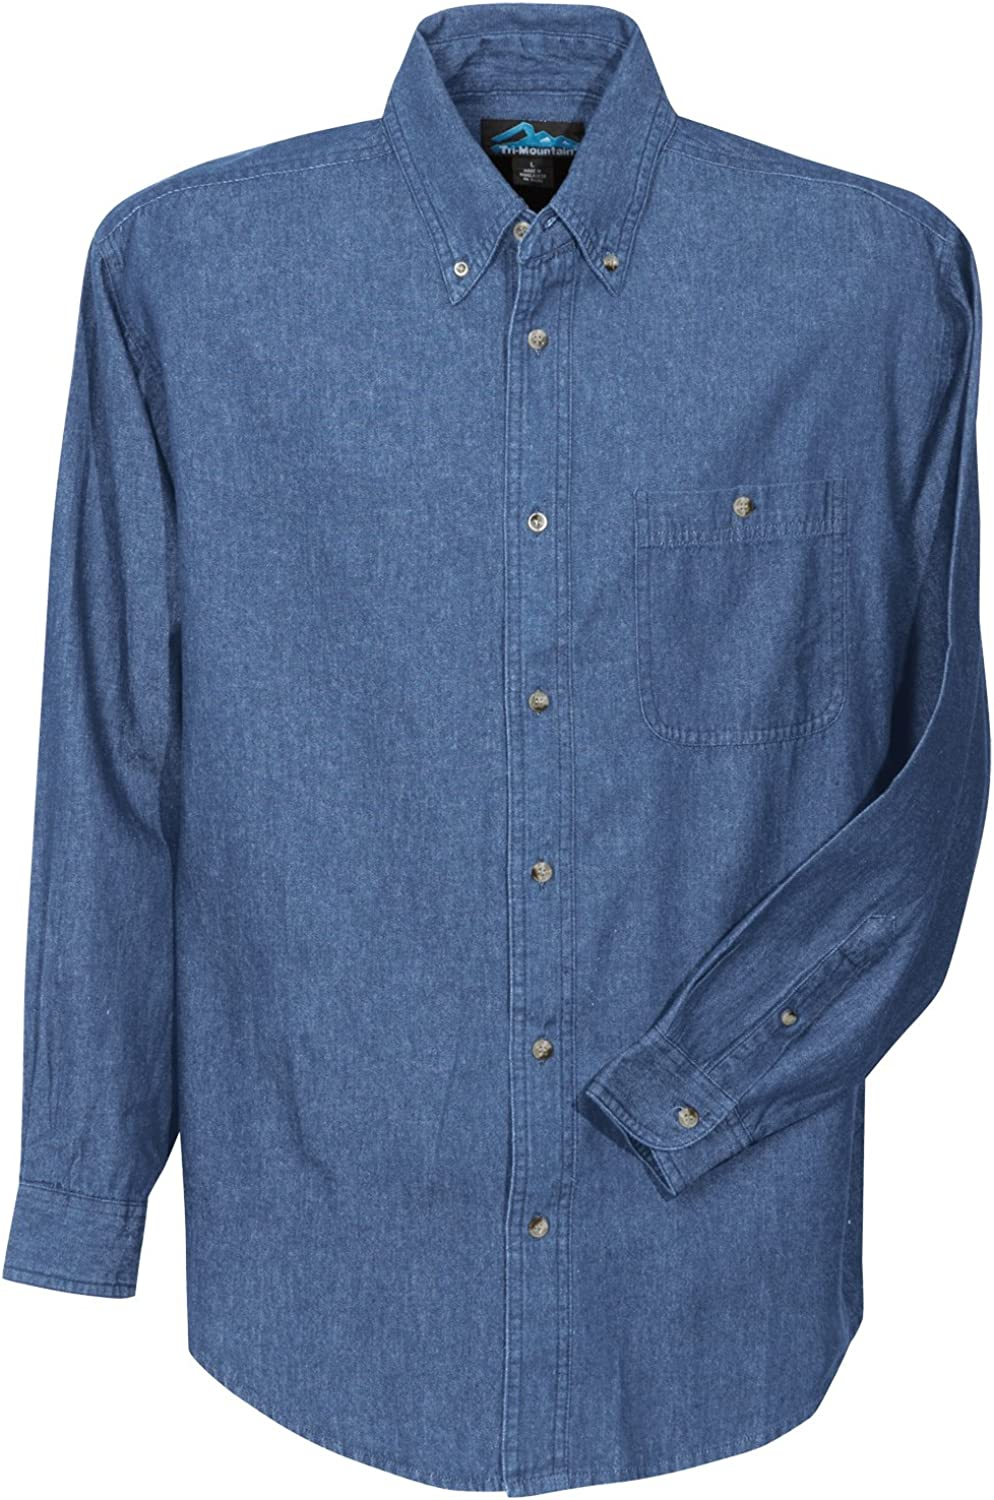 Big and Tall Long Sleeved Denim Shirts in 4 Colors up to Size 6X